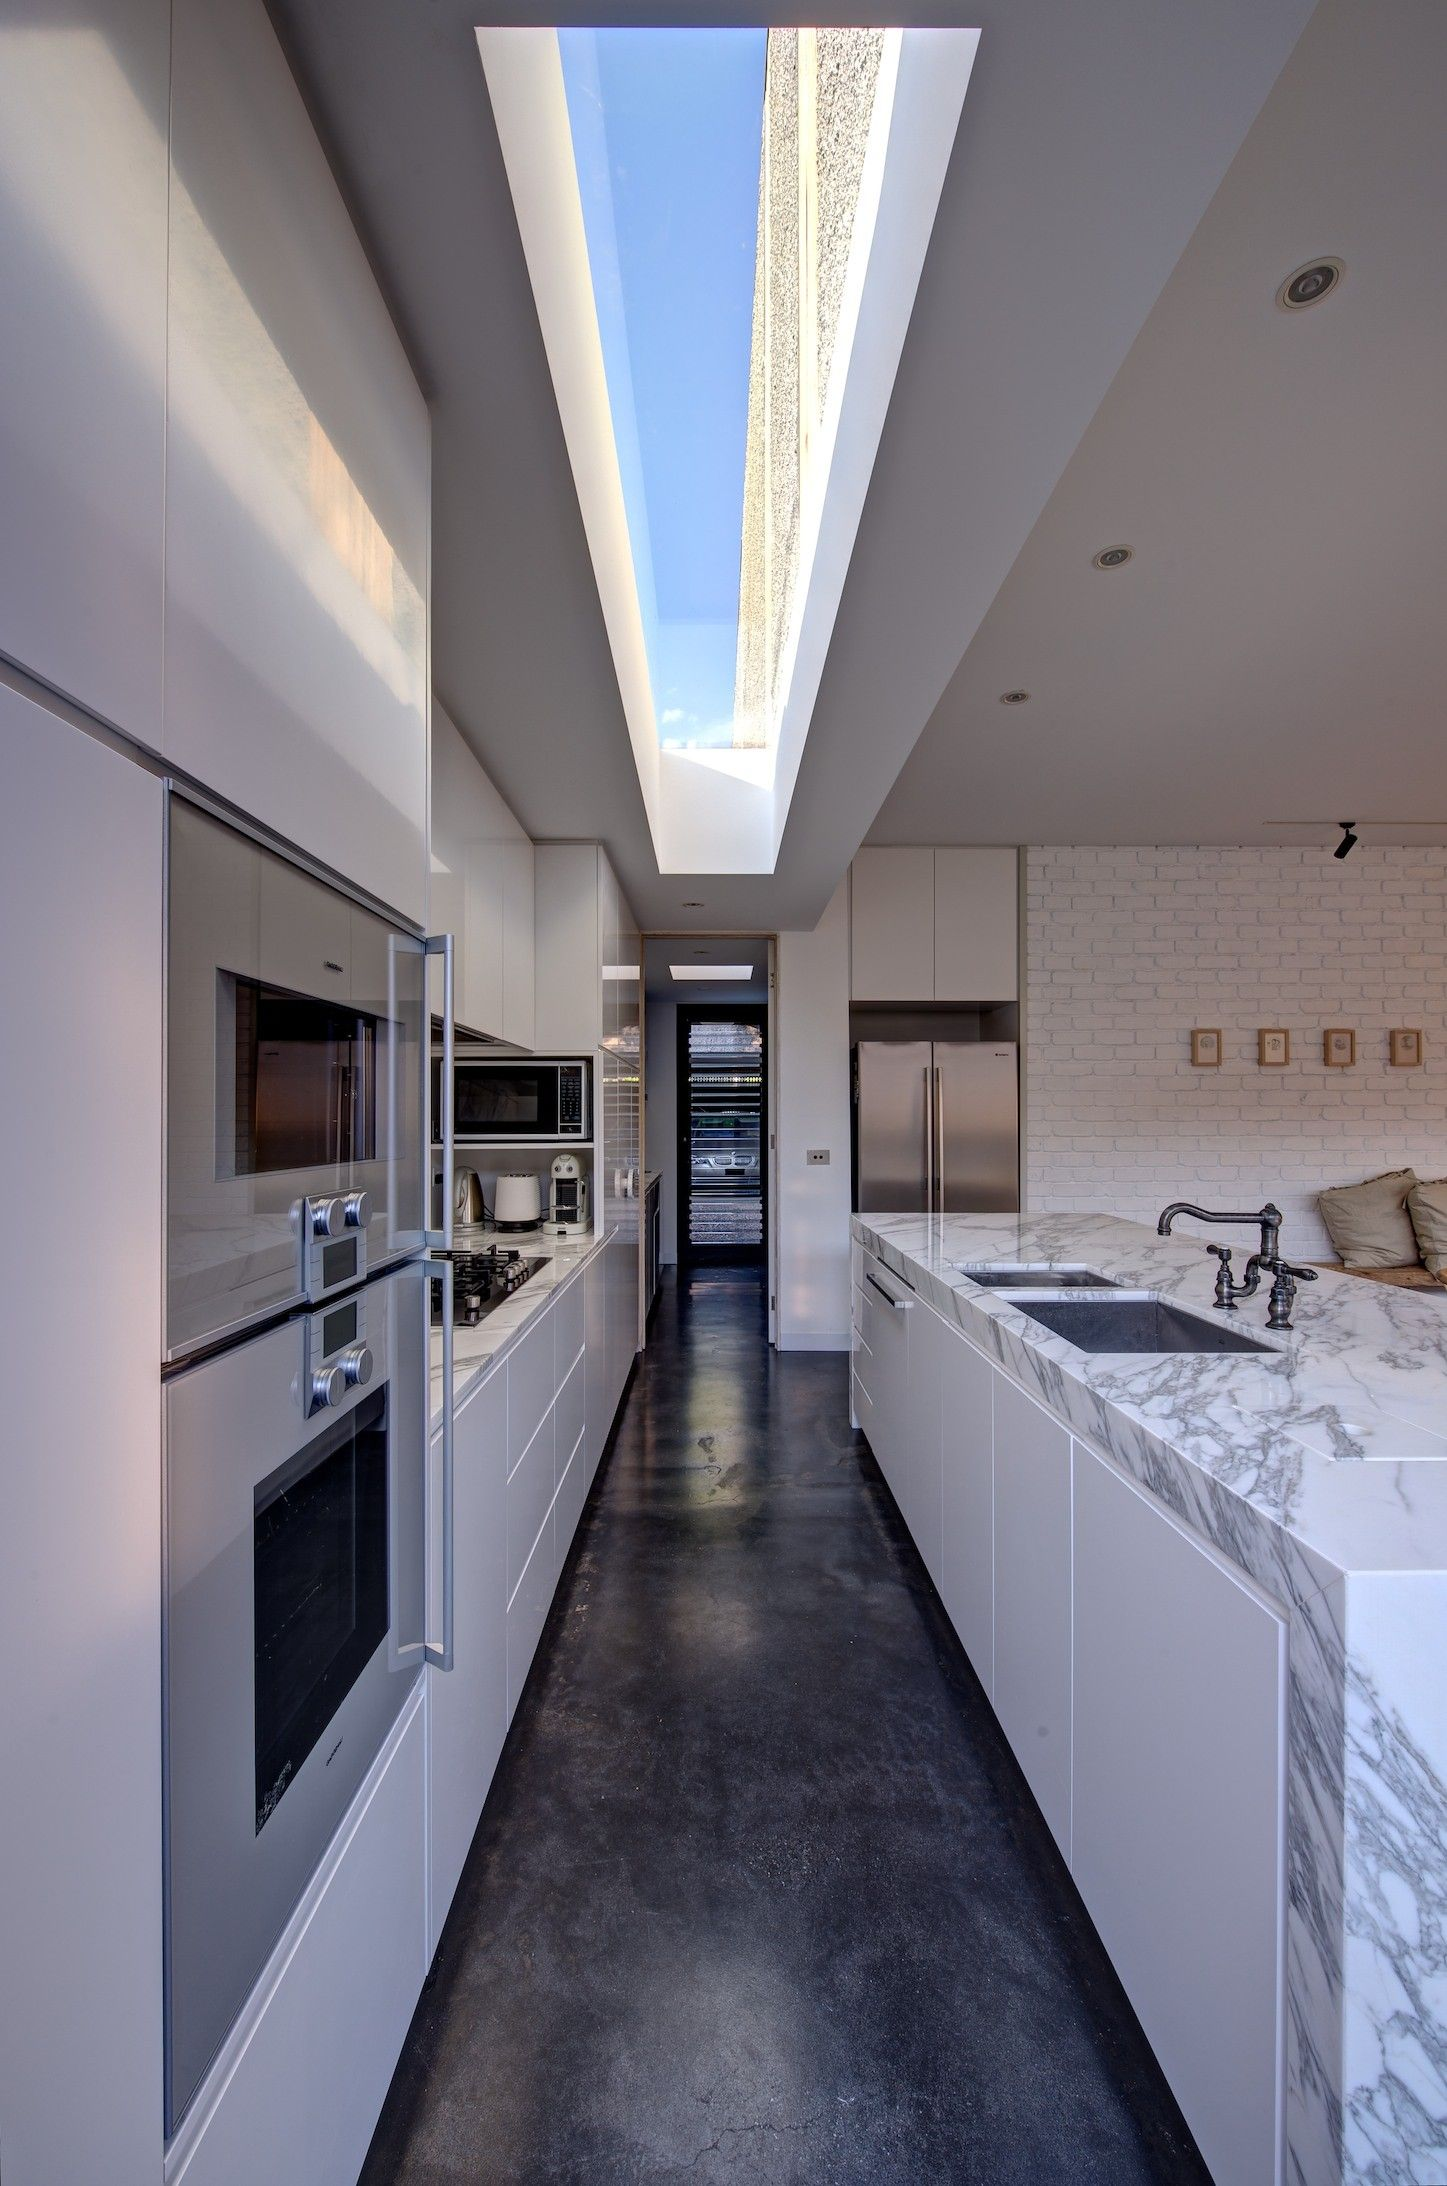 This is definitely not the best kitchen layout if you want the space to be a social area